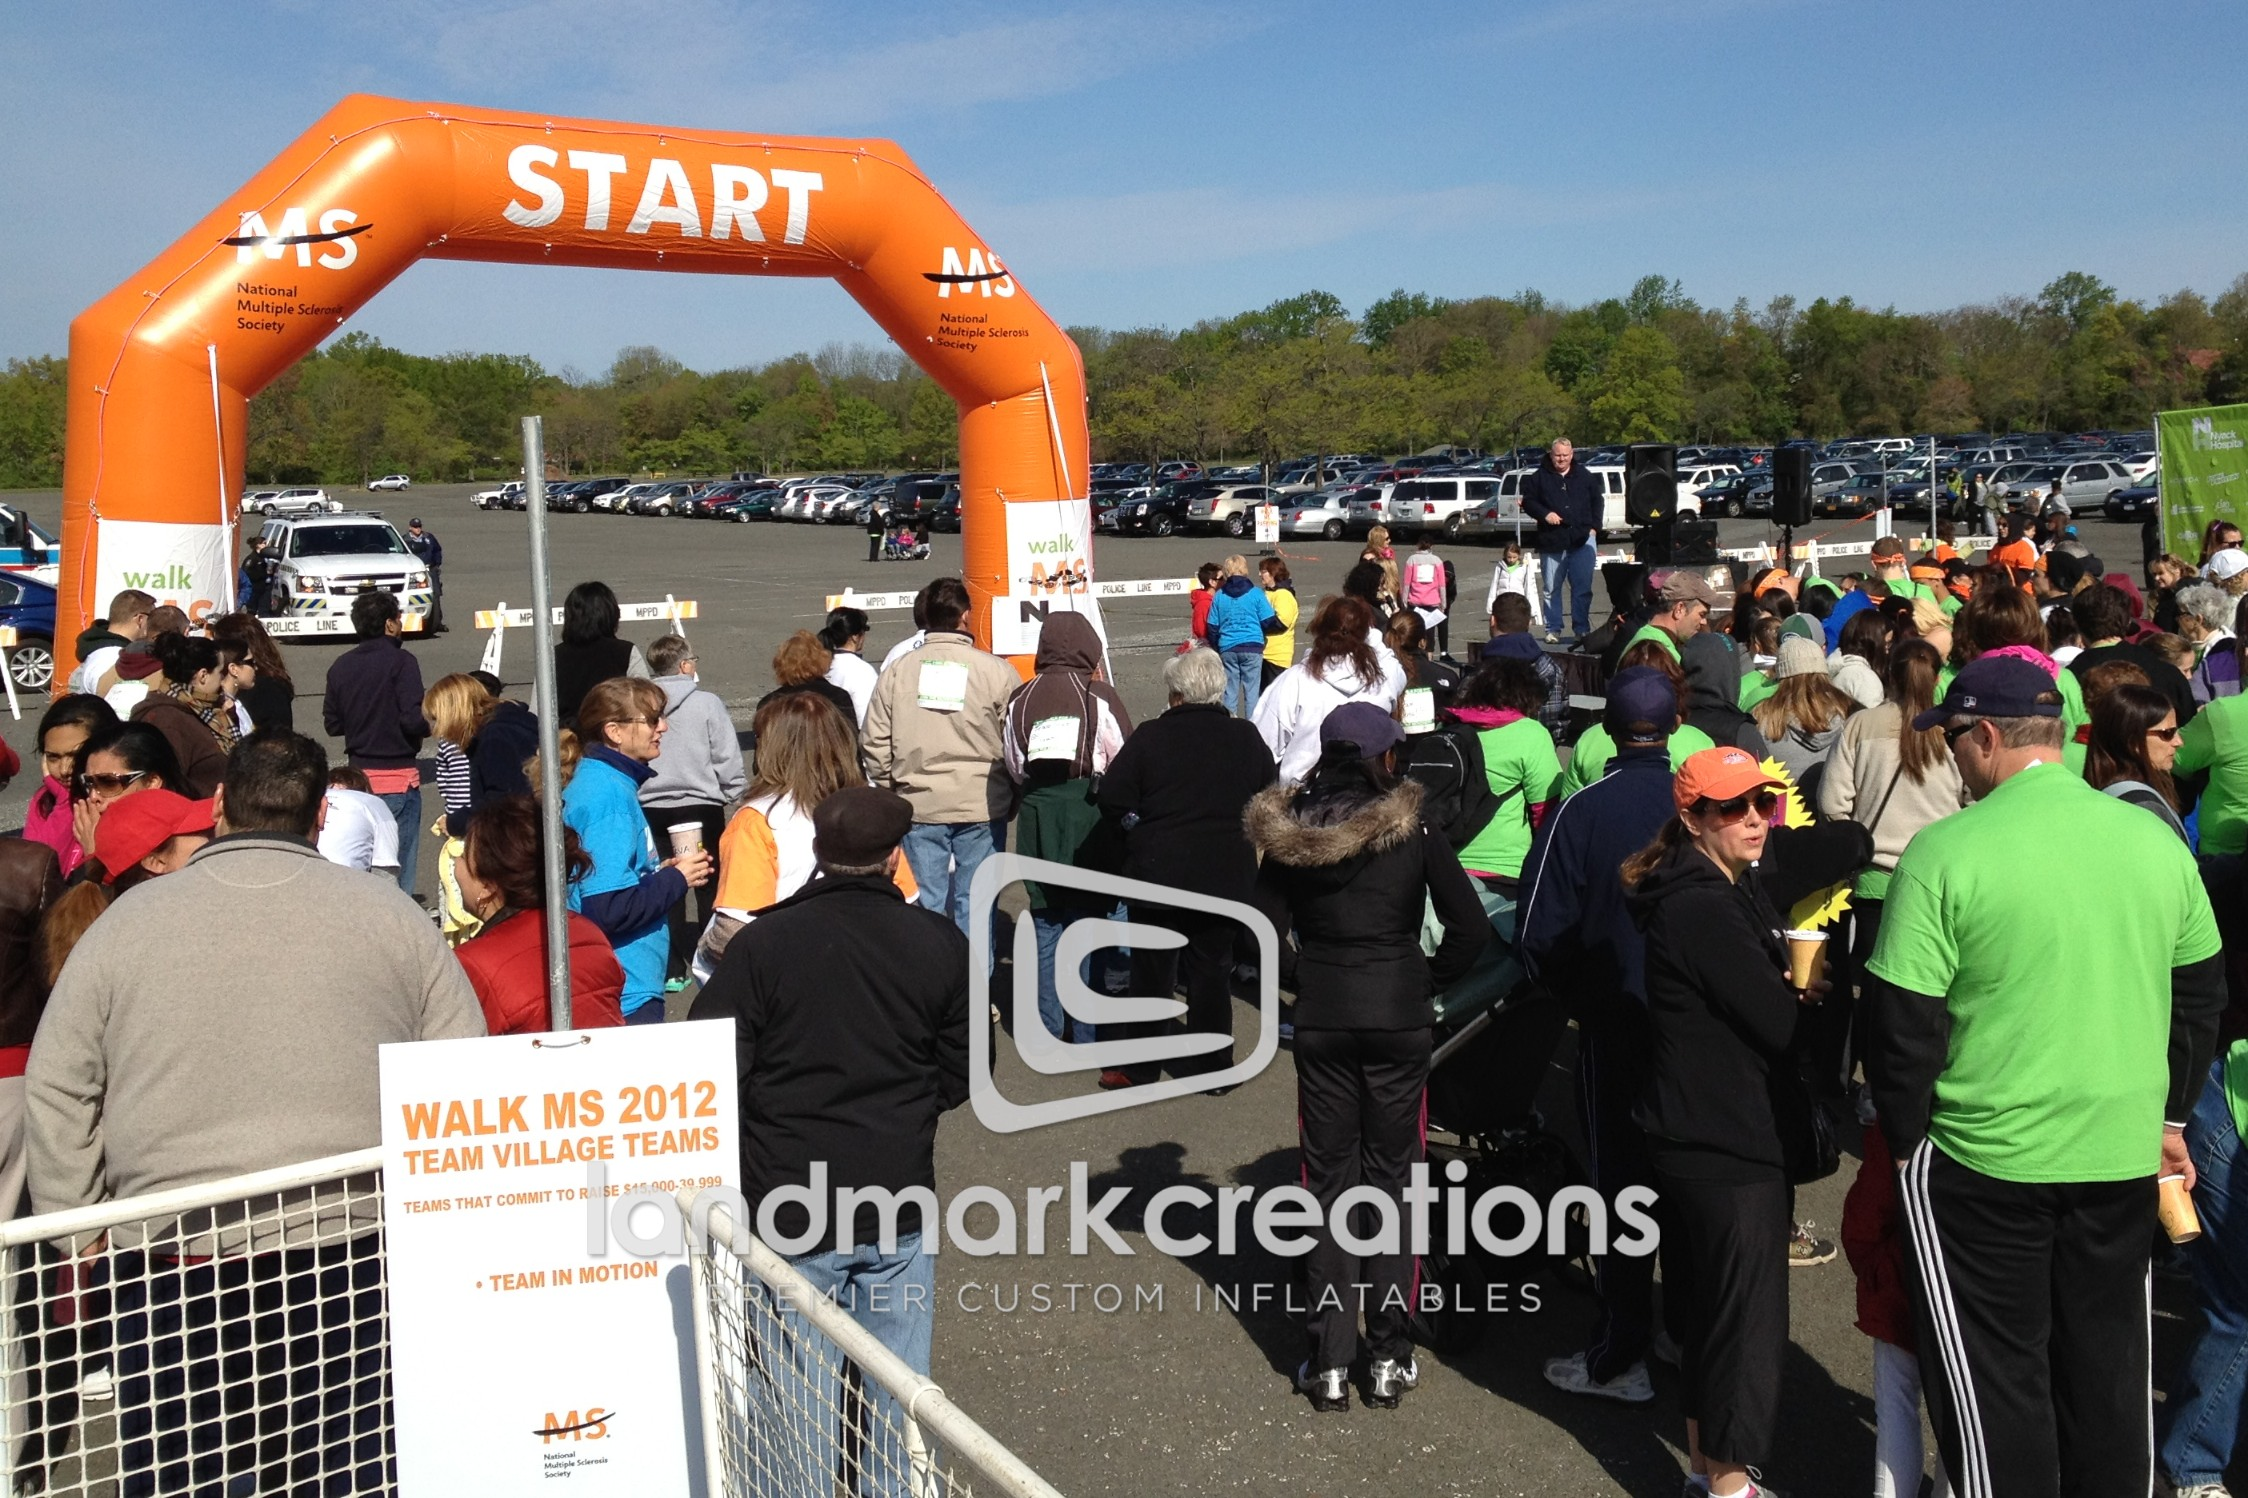 National MS Society of New York's Inflatable Arch at Walk MS Fundraising Event